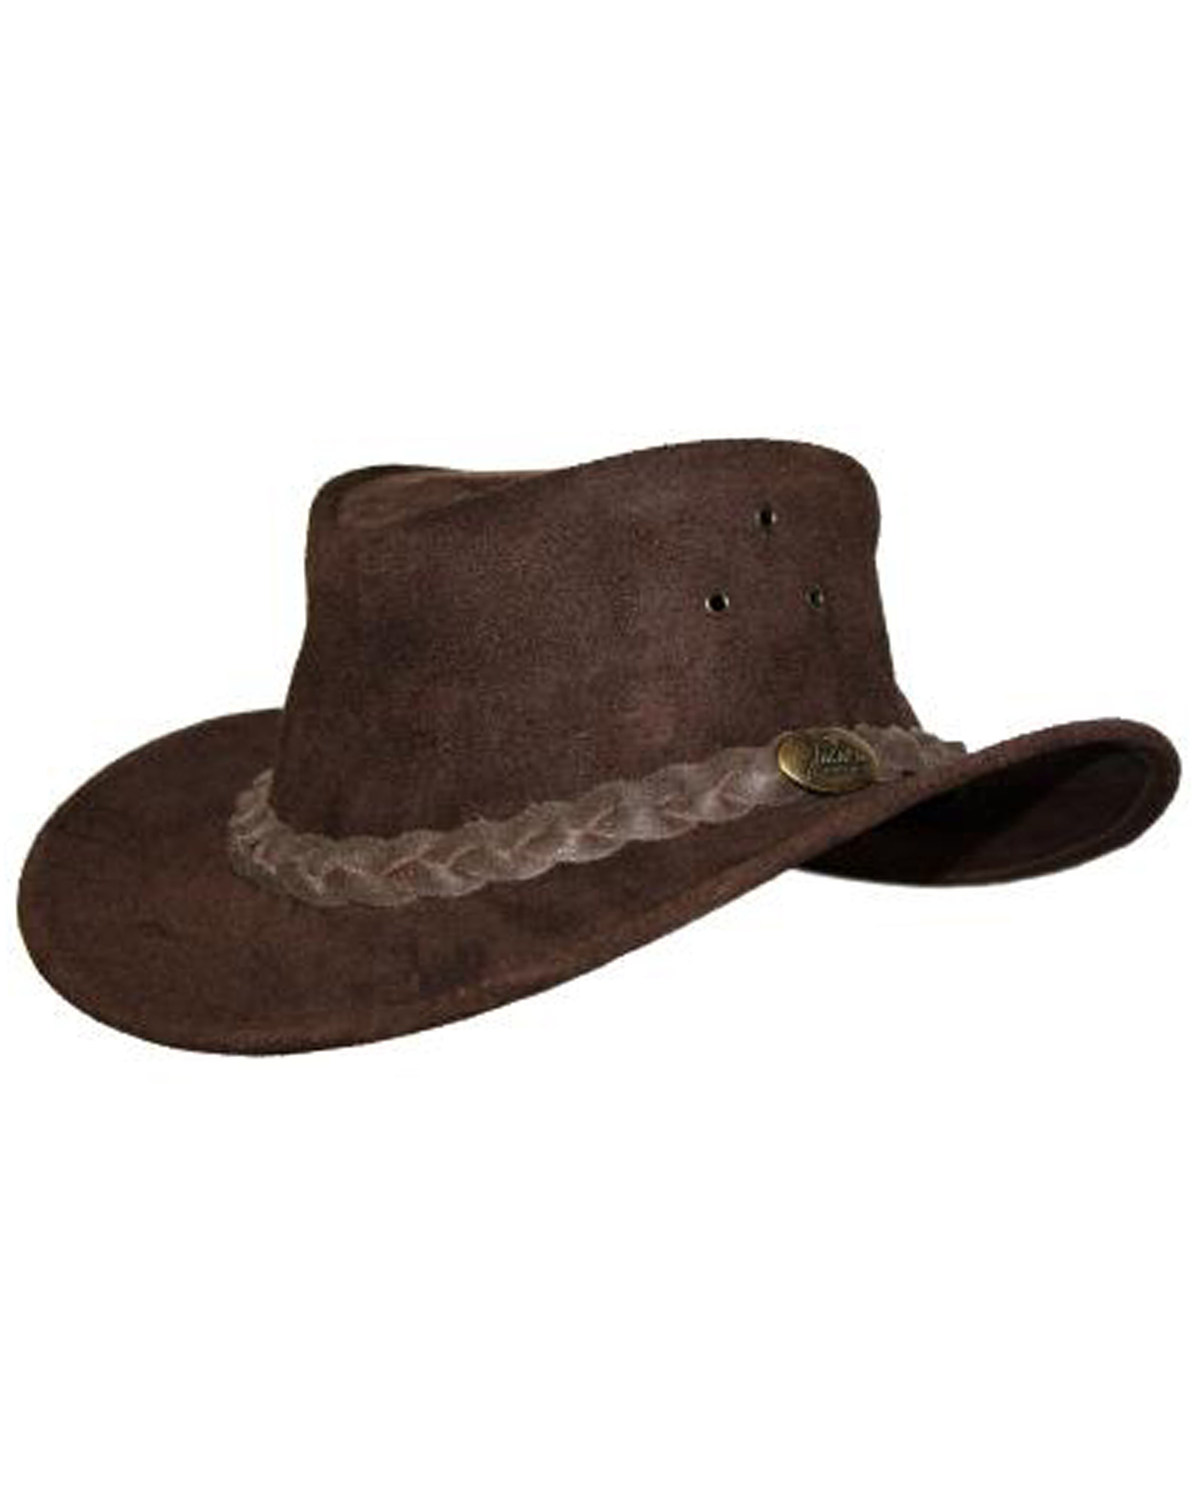 Jacaru Men s Gabba Leather Outback Hat  35adcc5d87e4